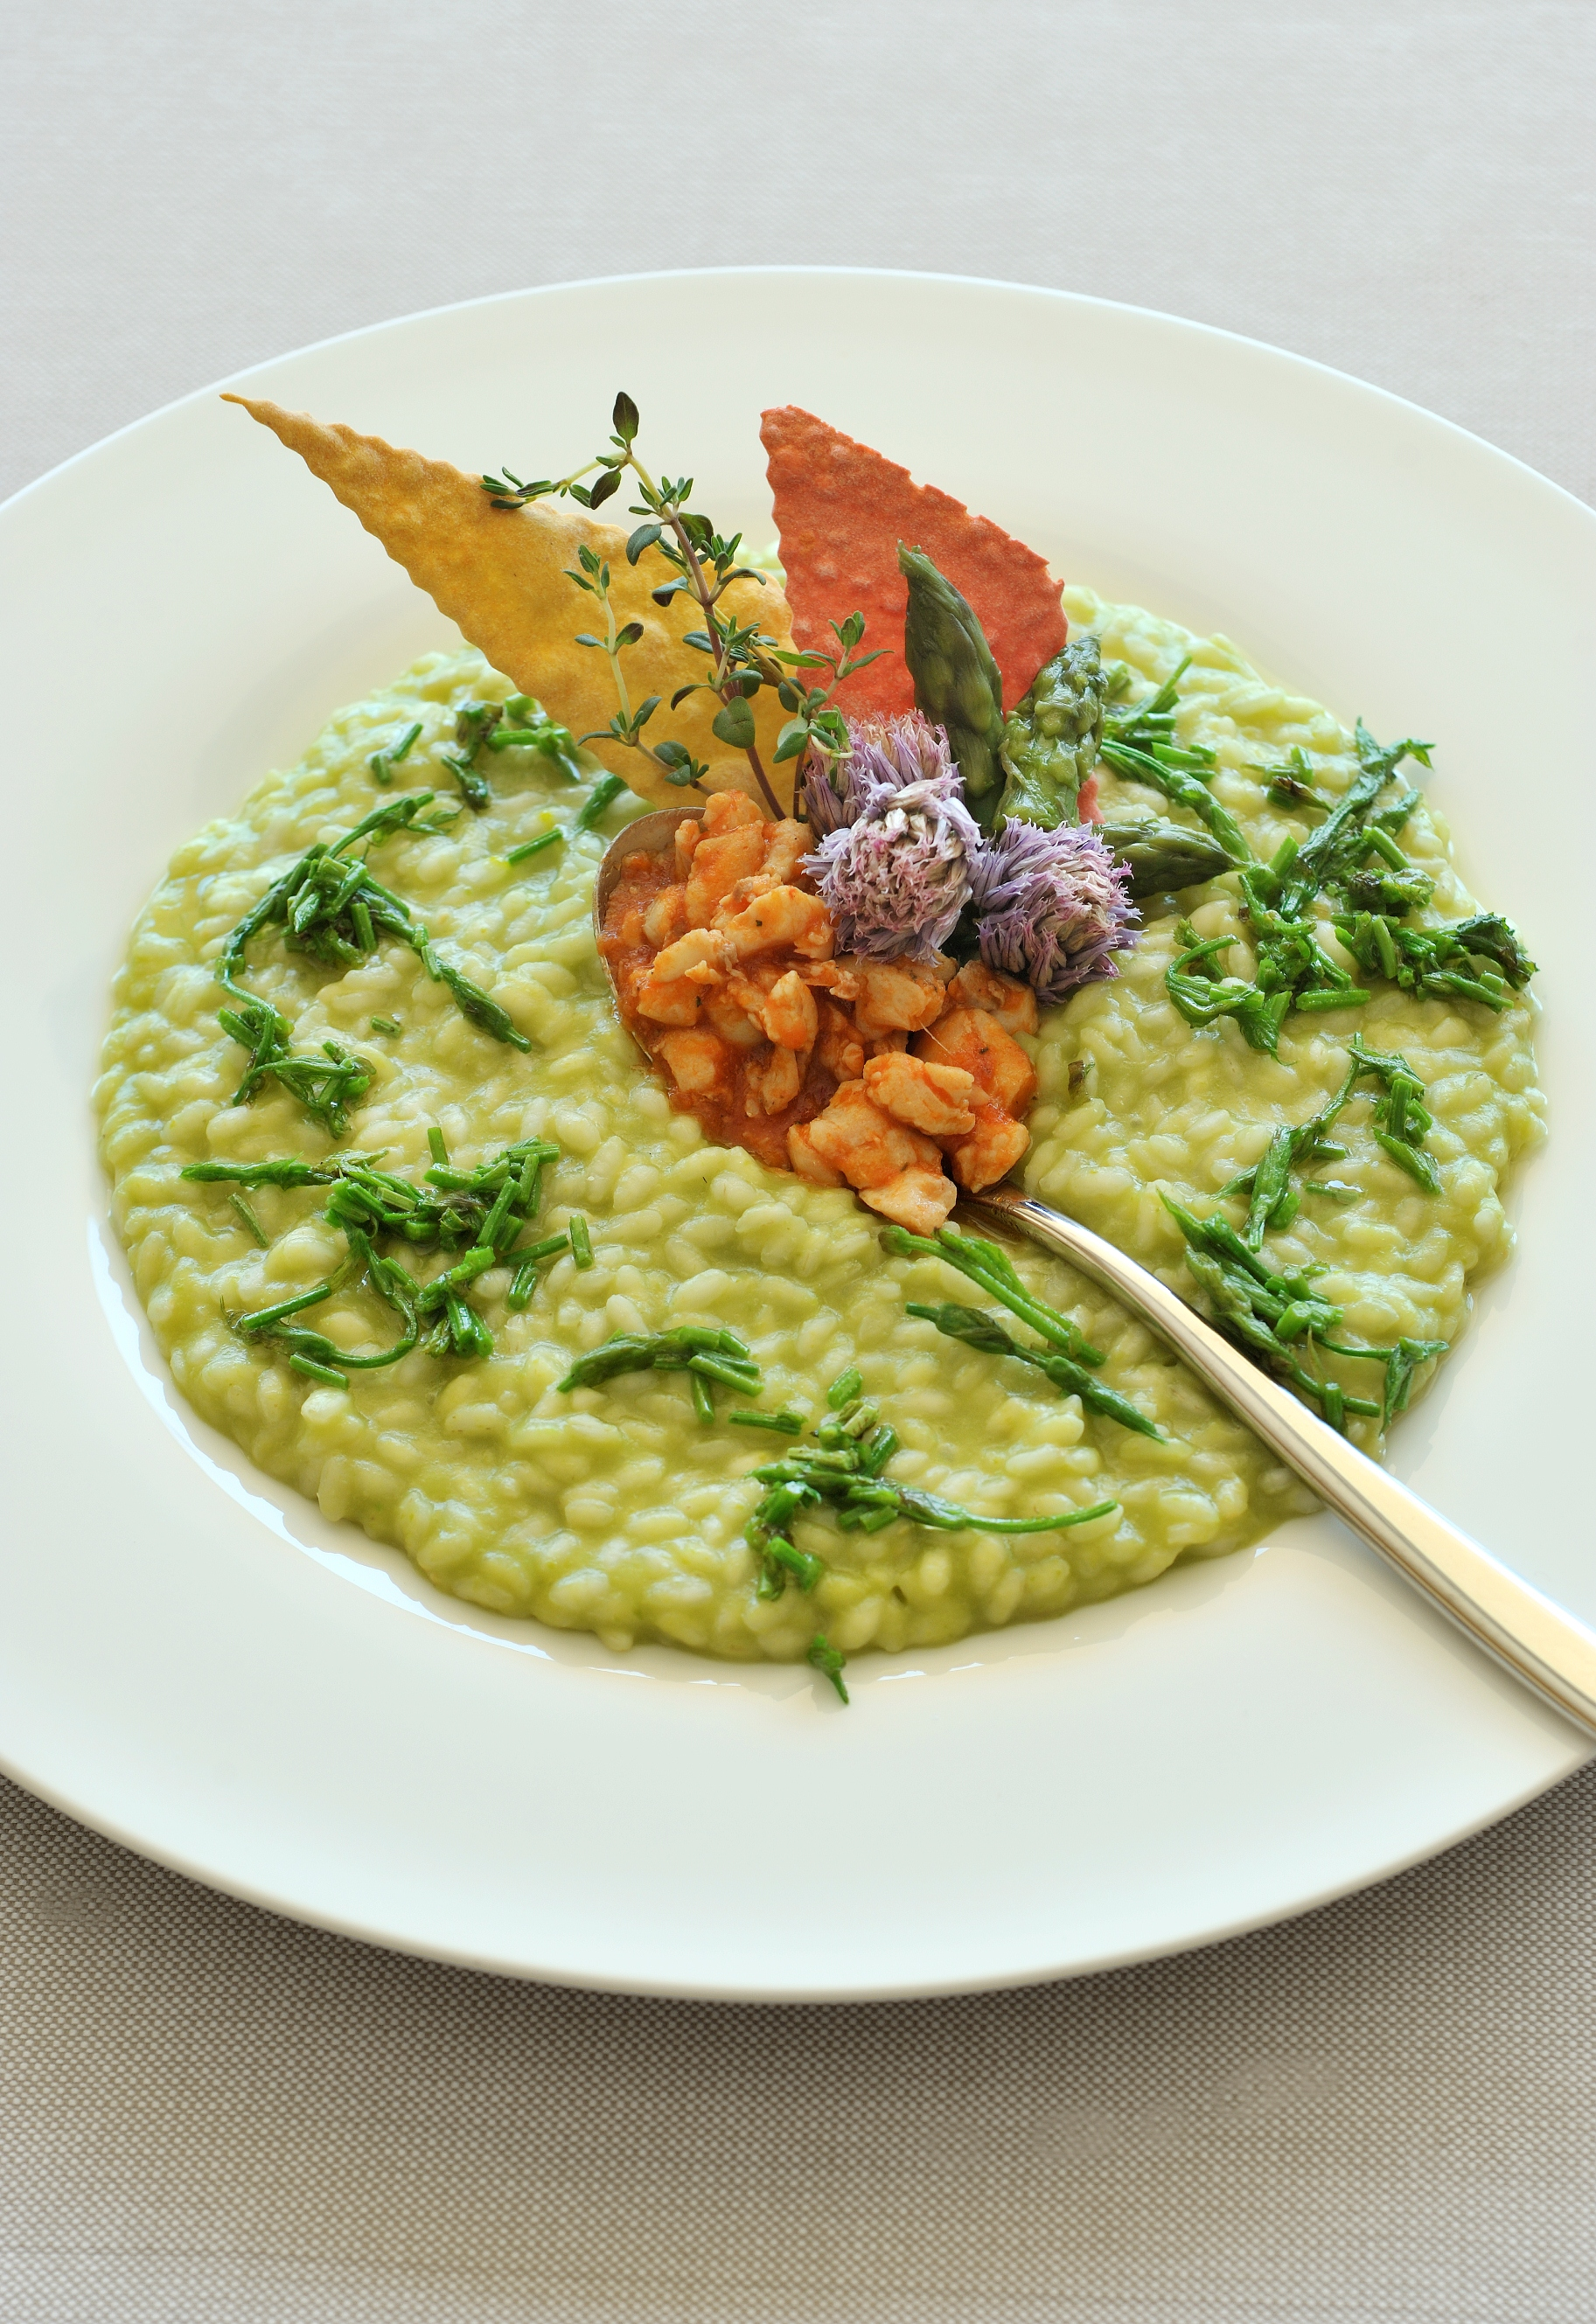 Aqualux Hotel Spa Suite & Terme_Risotto